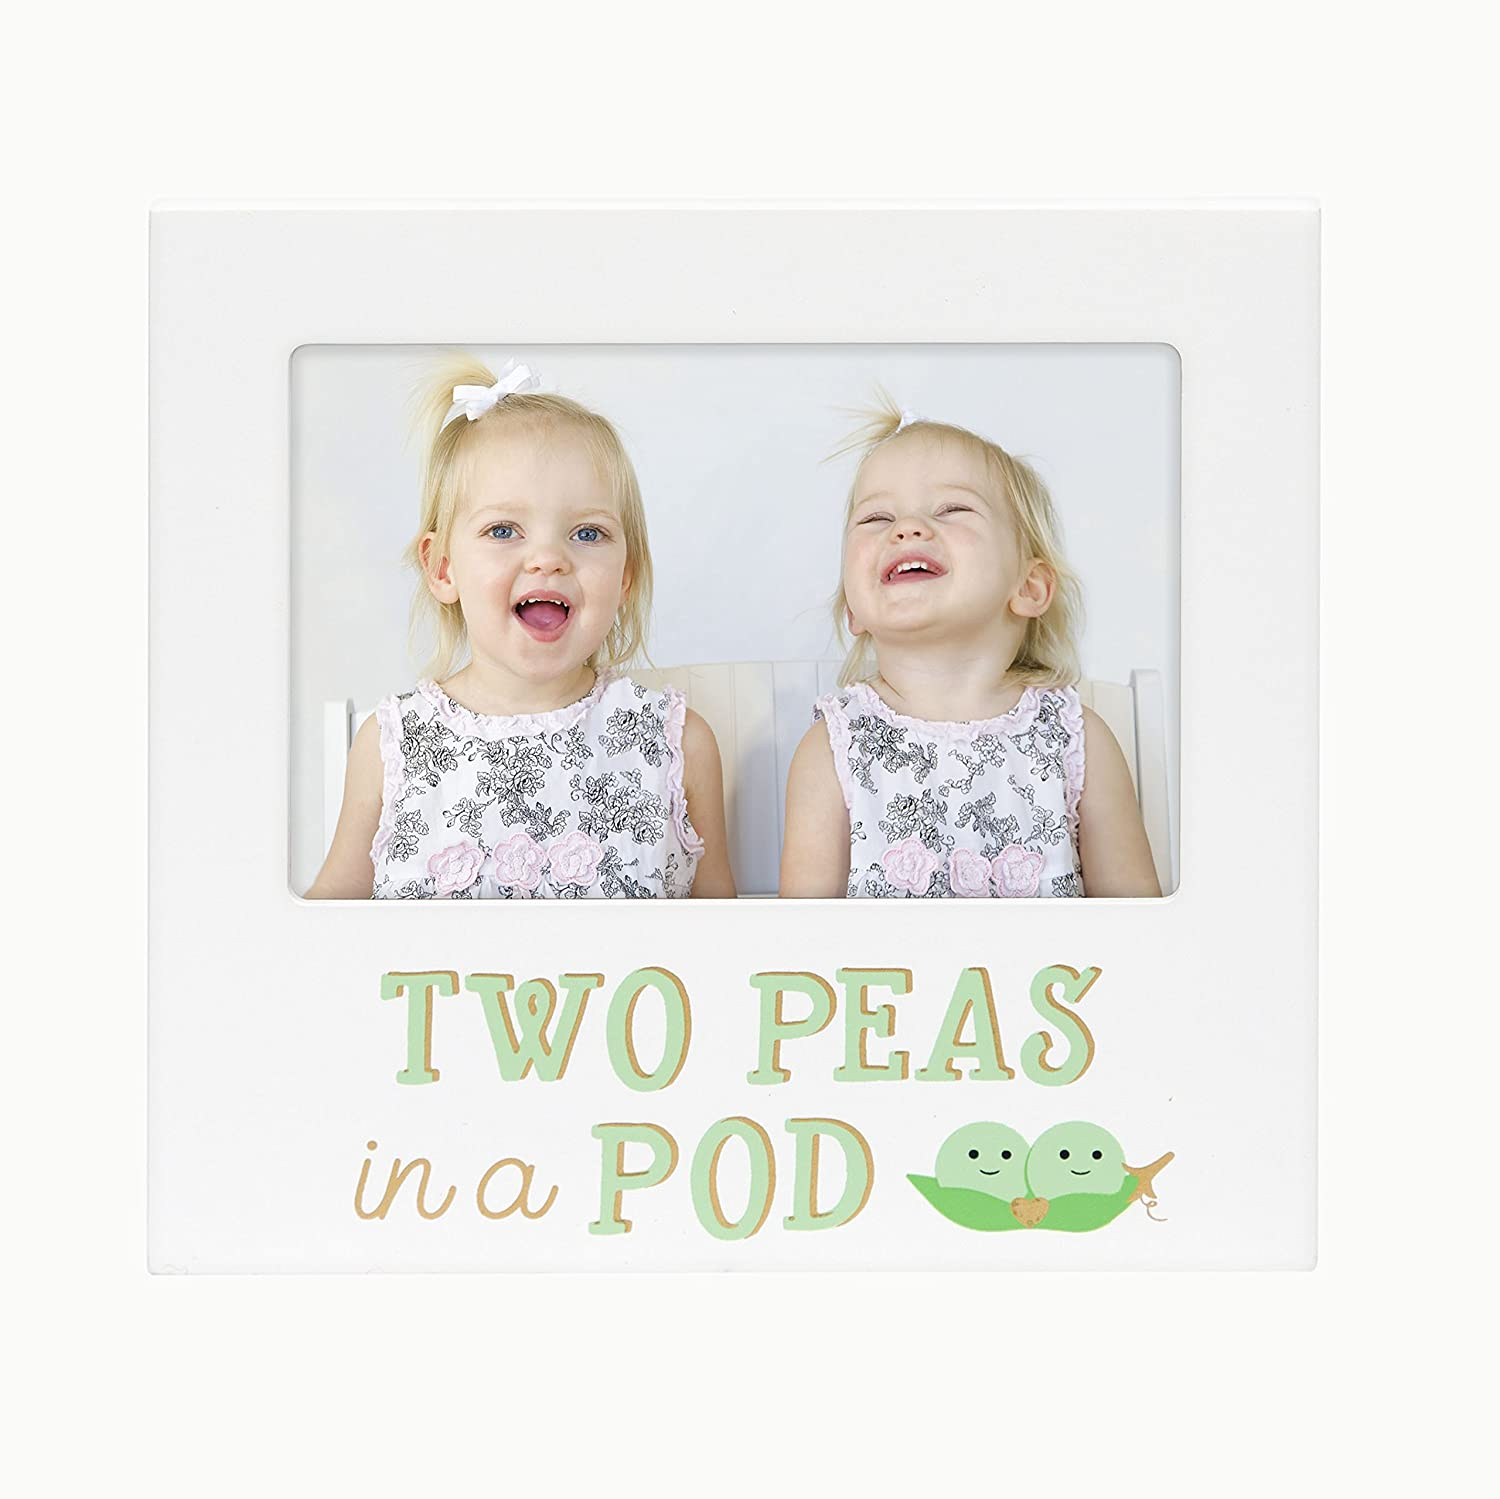 Pearhead Two Peas in A Pod, Siblings Sentiment Frame, Keepsake Photo Frame for Twins or Siblings, White 72074